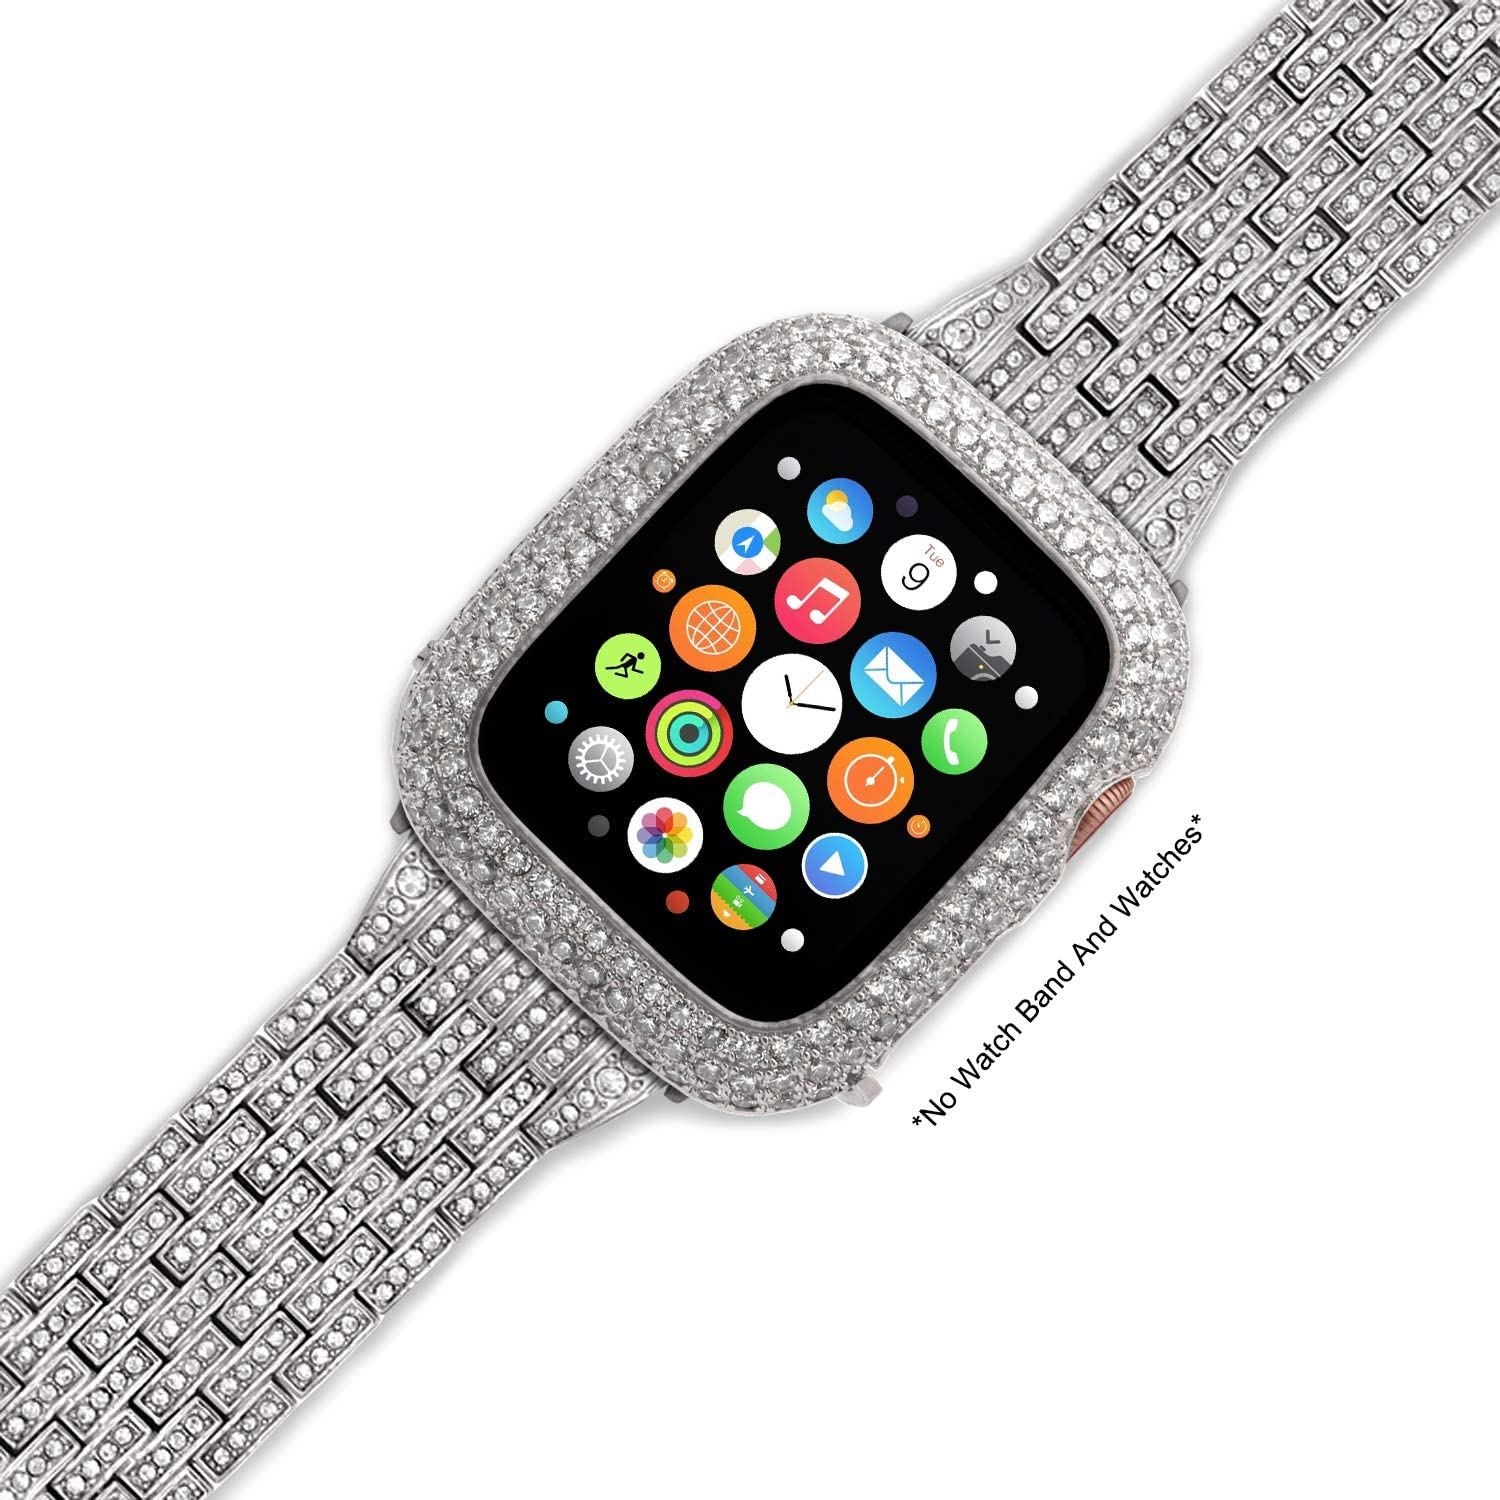 iRepair Sparkling Crystal Diamond Case Cover Bezel Compatible with Apple Watch Series 3 Series 2 - Silver (42mm)